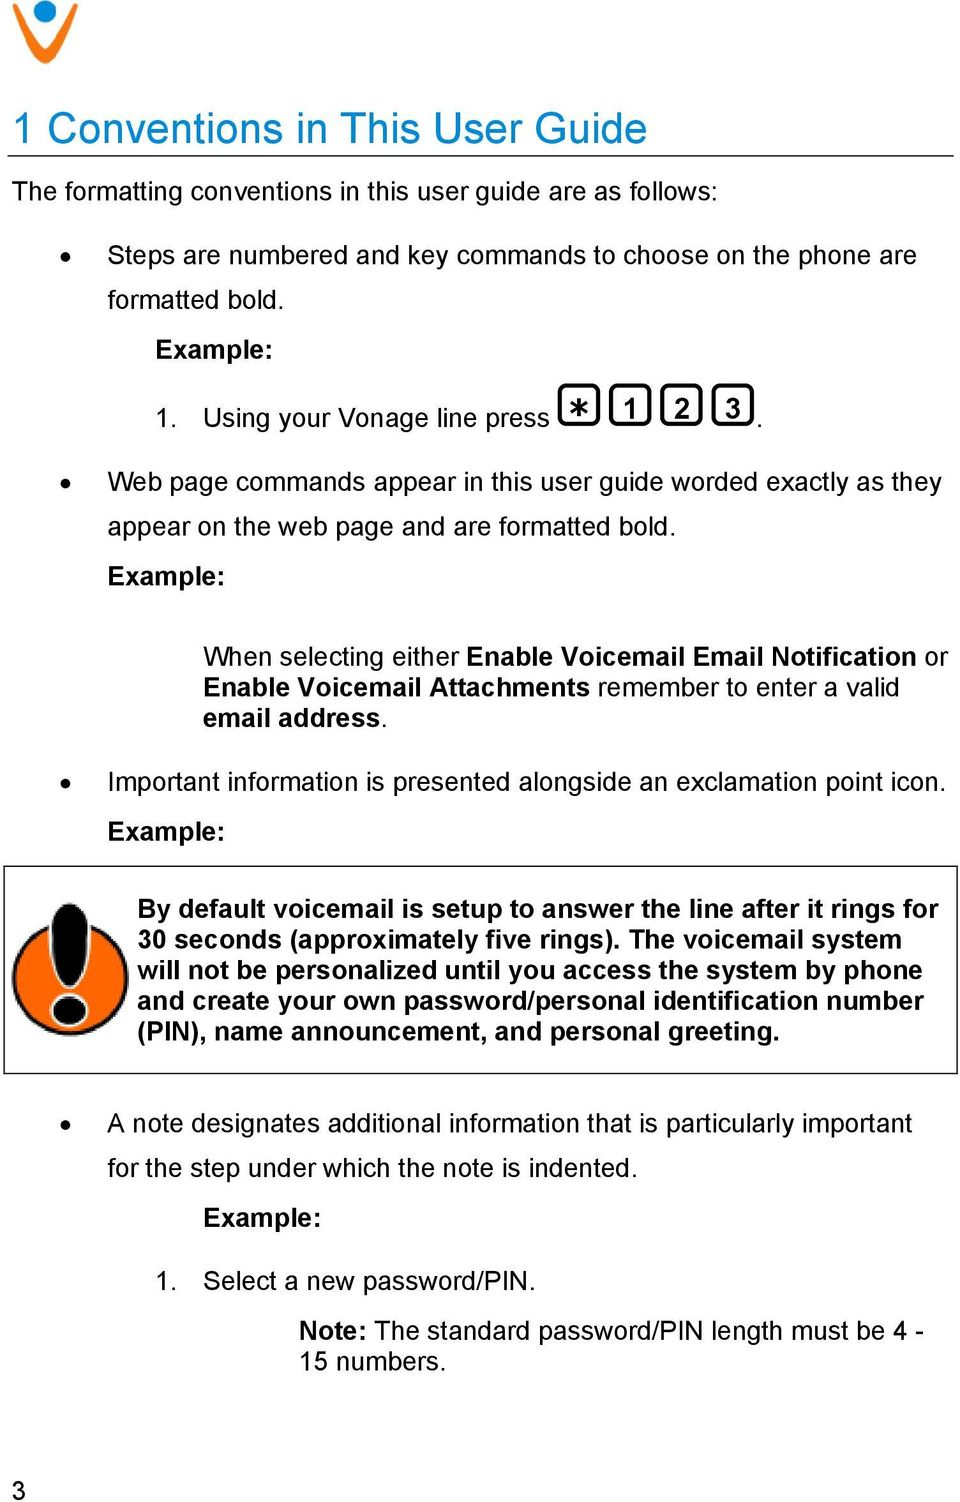 Example: * When selecting either Enable Voicemail Email Notification or Enable Voicemail Attachments remember to enter a valid email address.